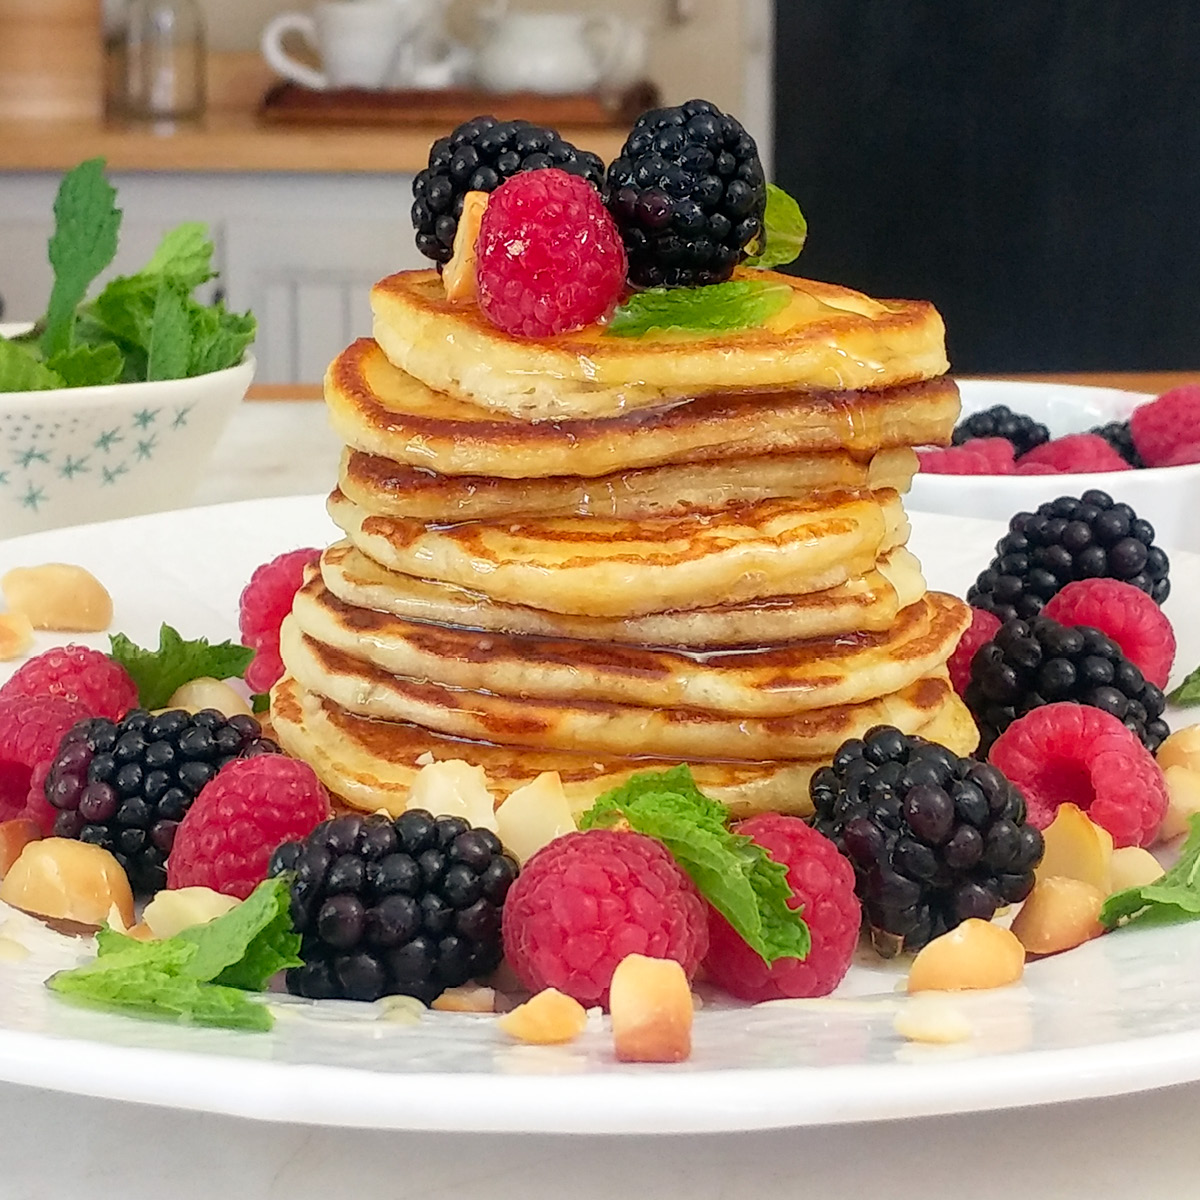 Crumpet stack with berries